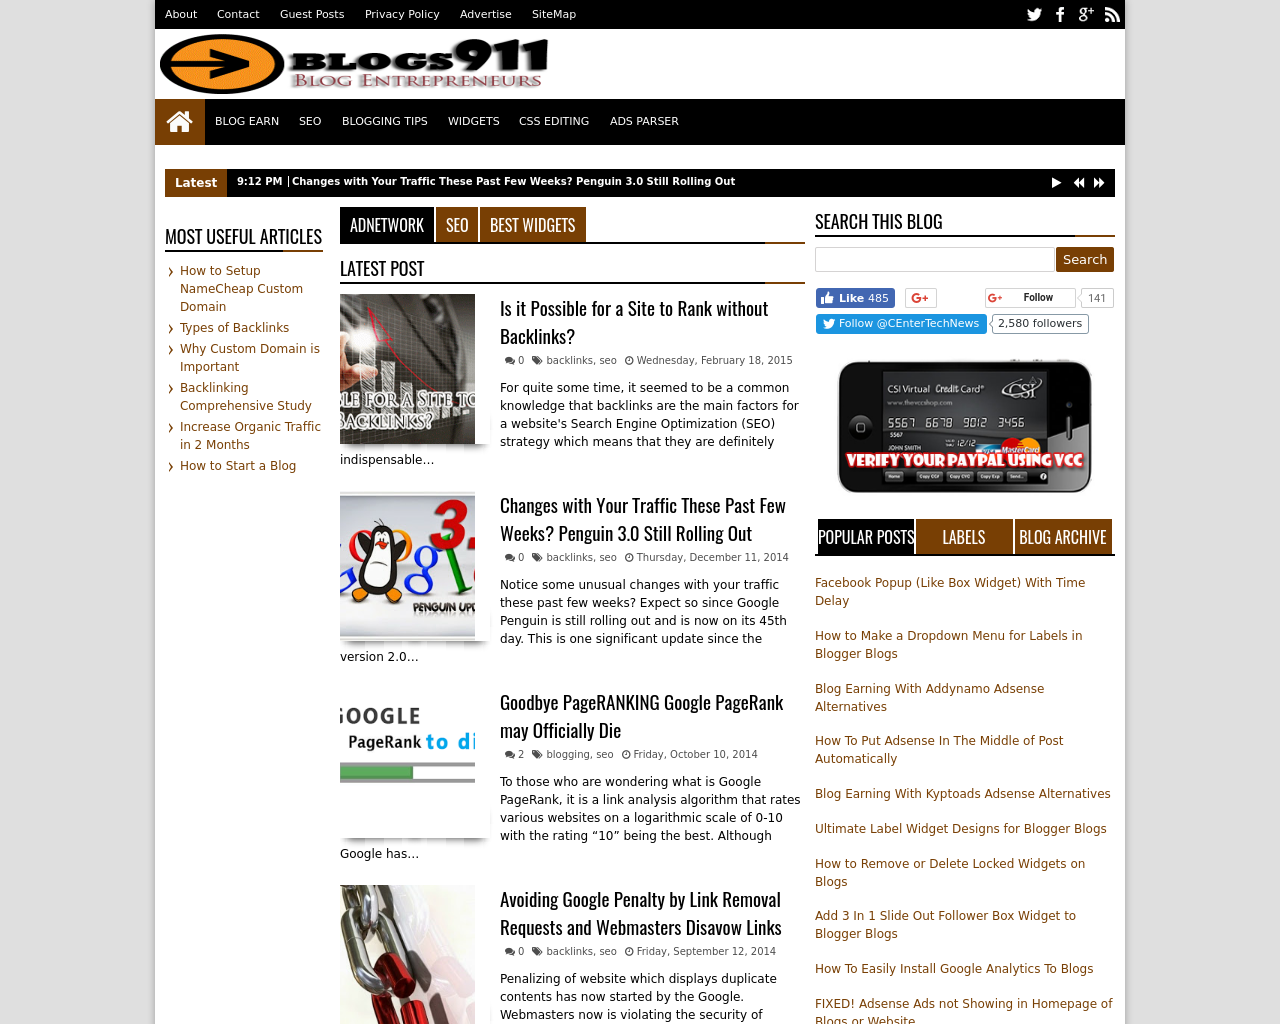 BloGs911-Advertising-Reviews-Pricing